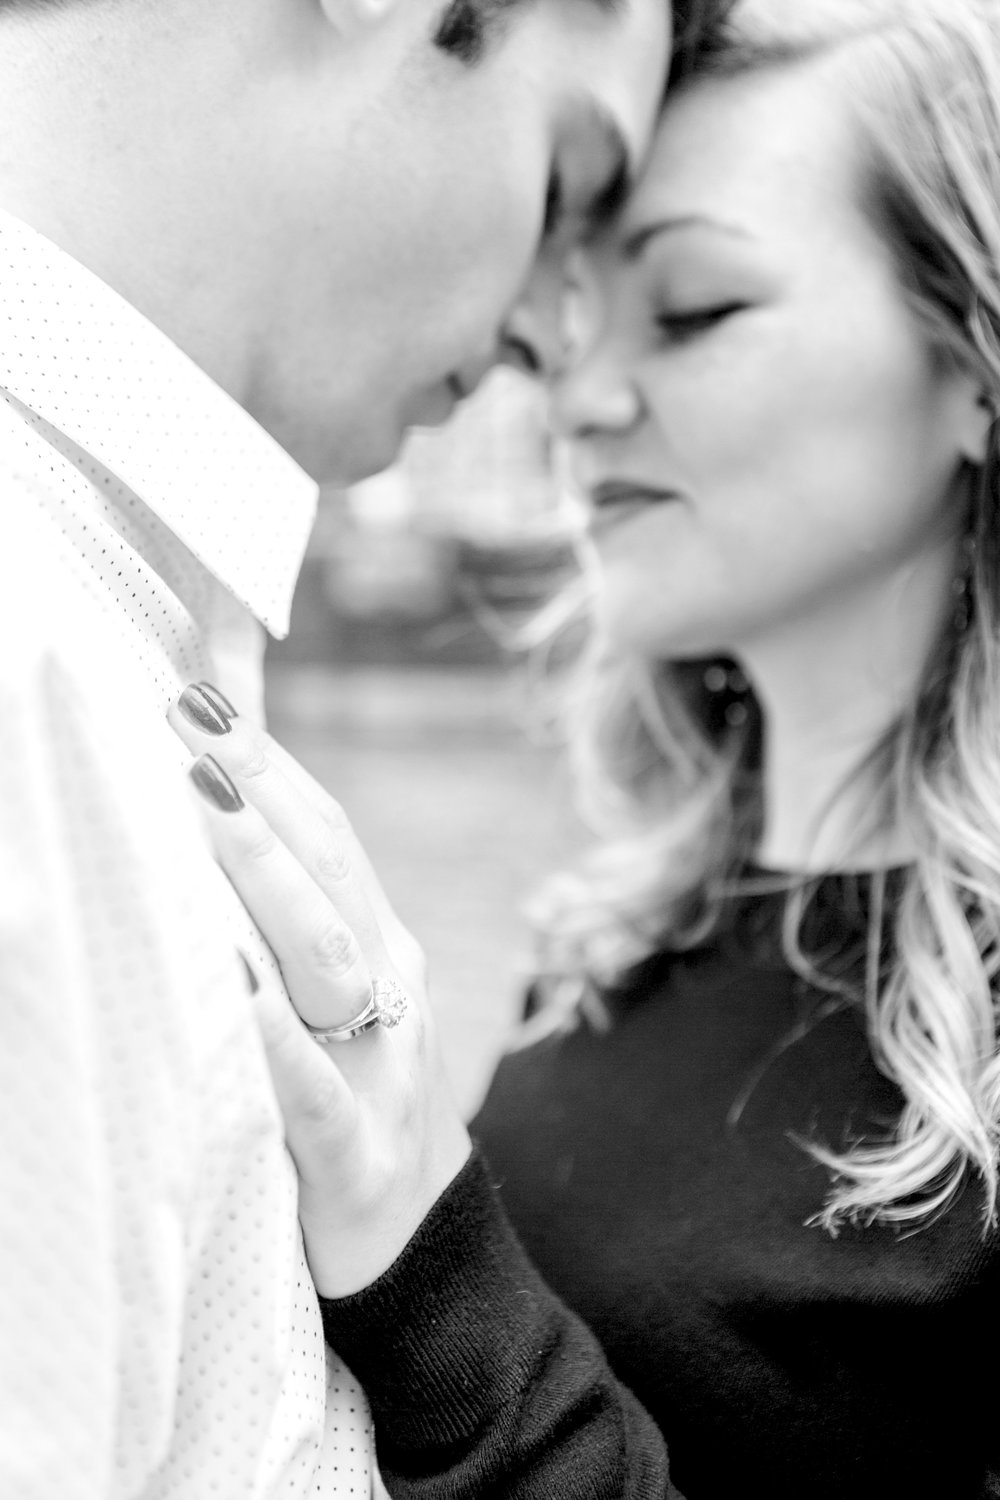 engagementsession-10.jpg